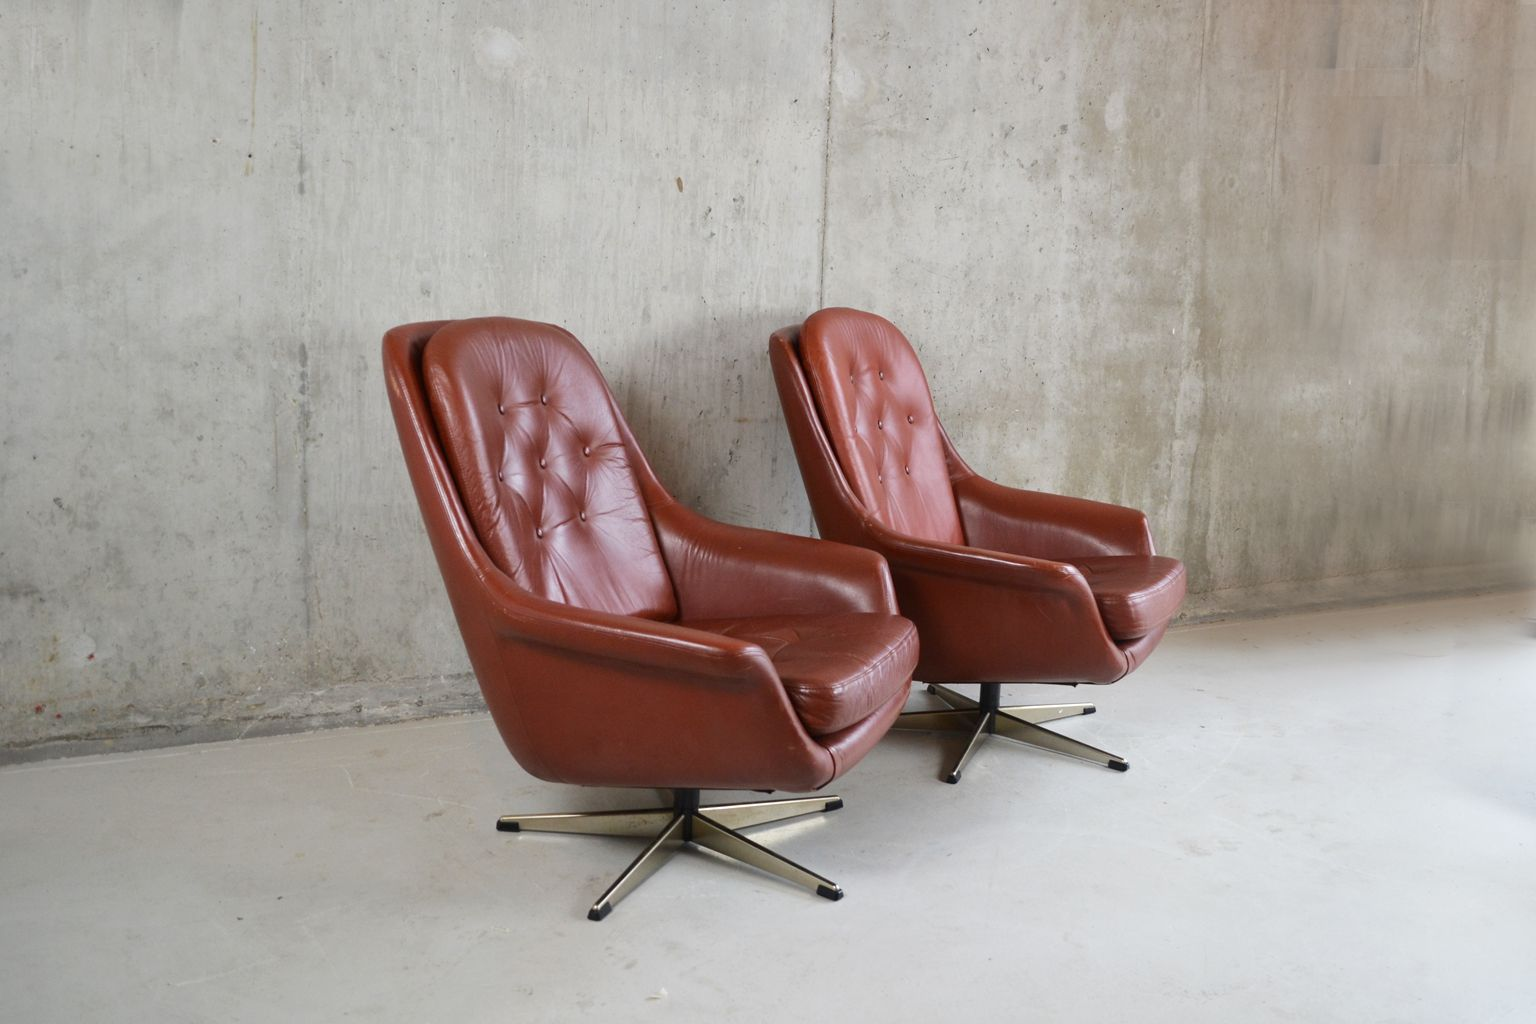 quilted swivel chair industrial metal dining chairs mid century modern tan leather button bucket 1970s